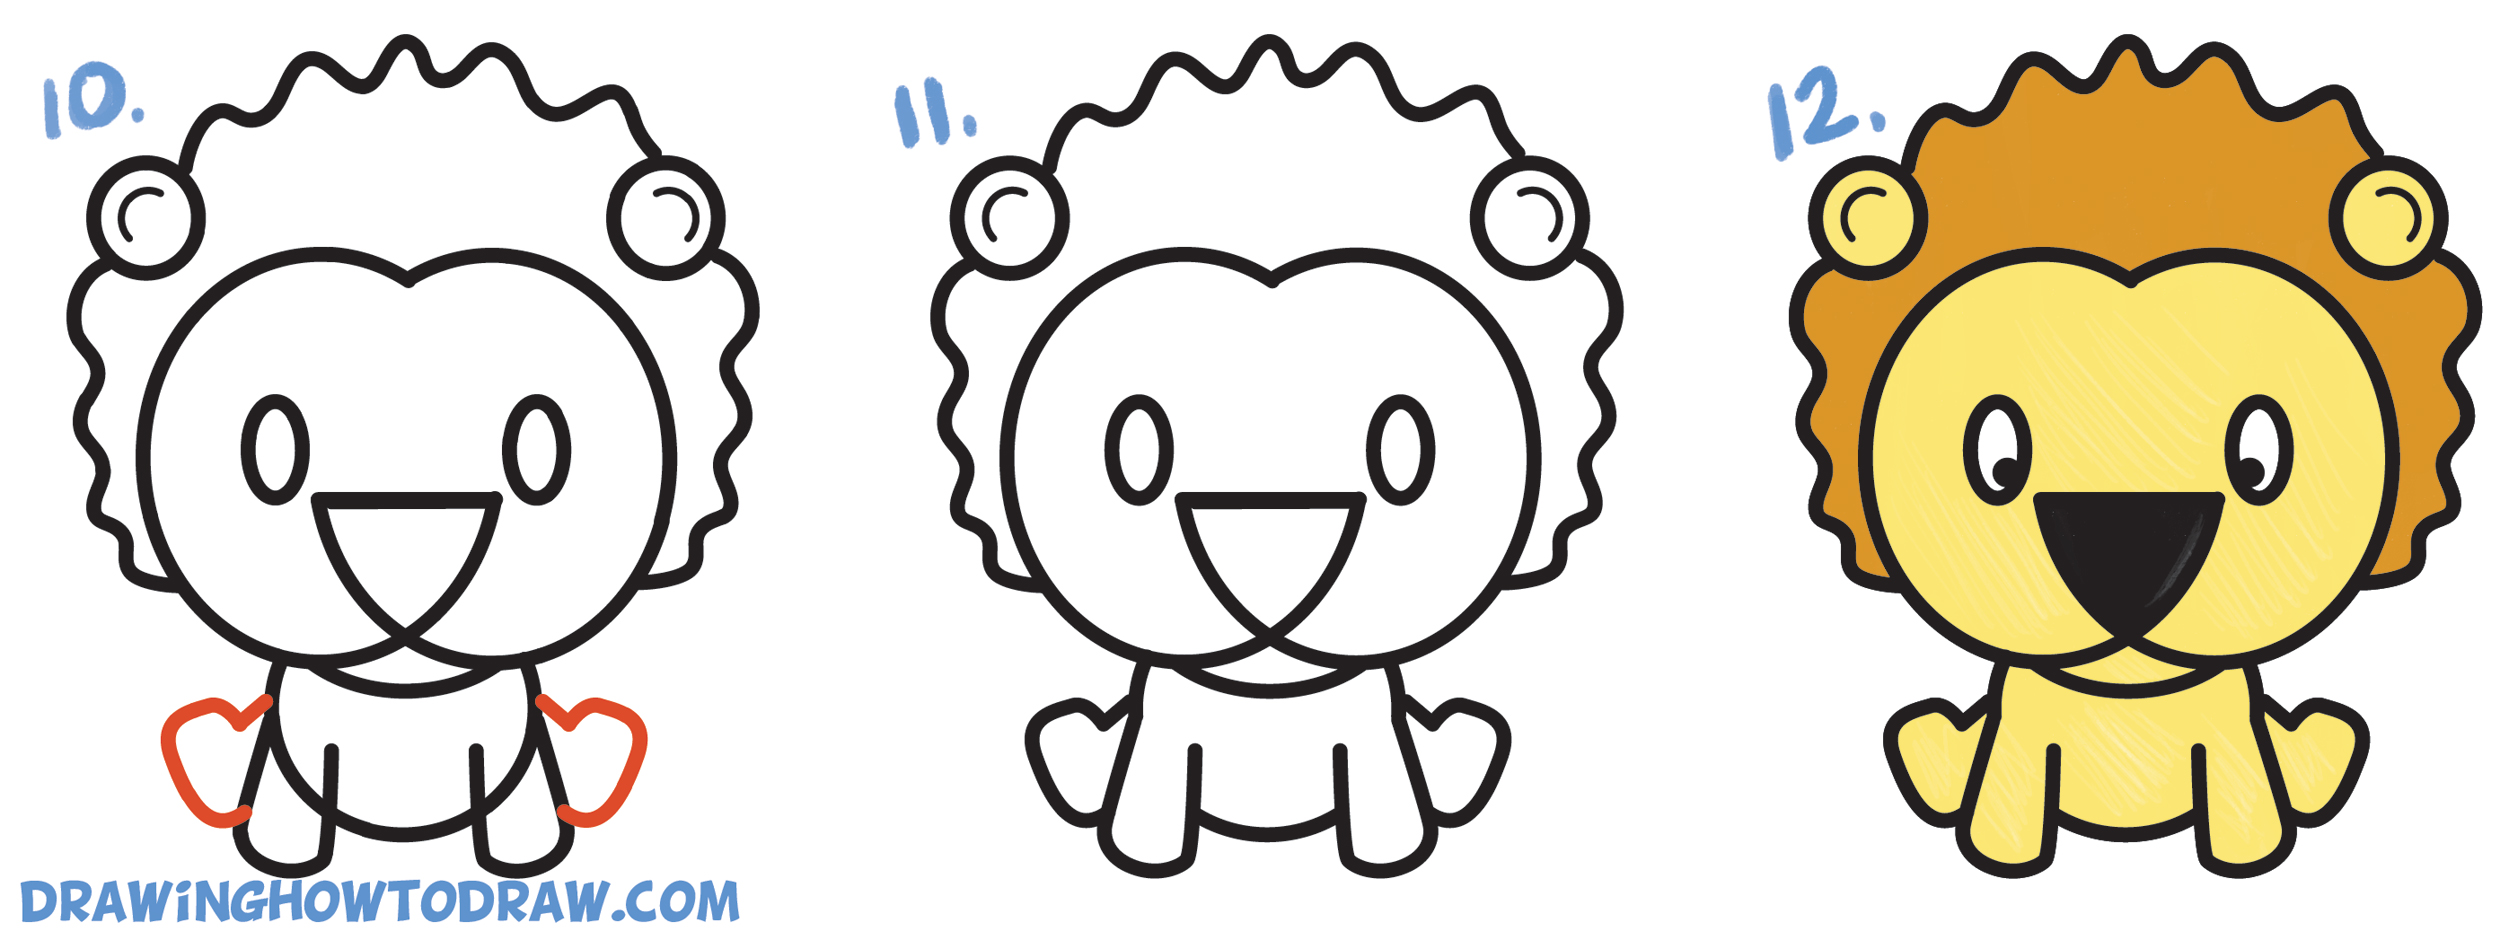 learn how to draw a cute cartoon lion from letters